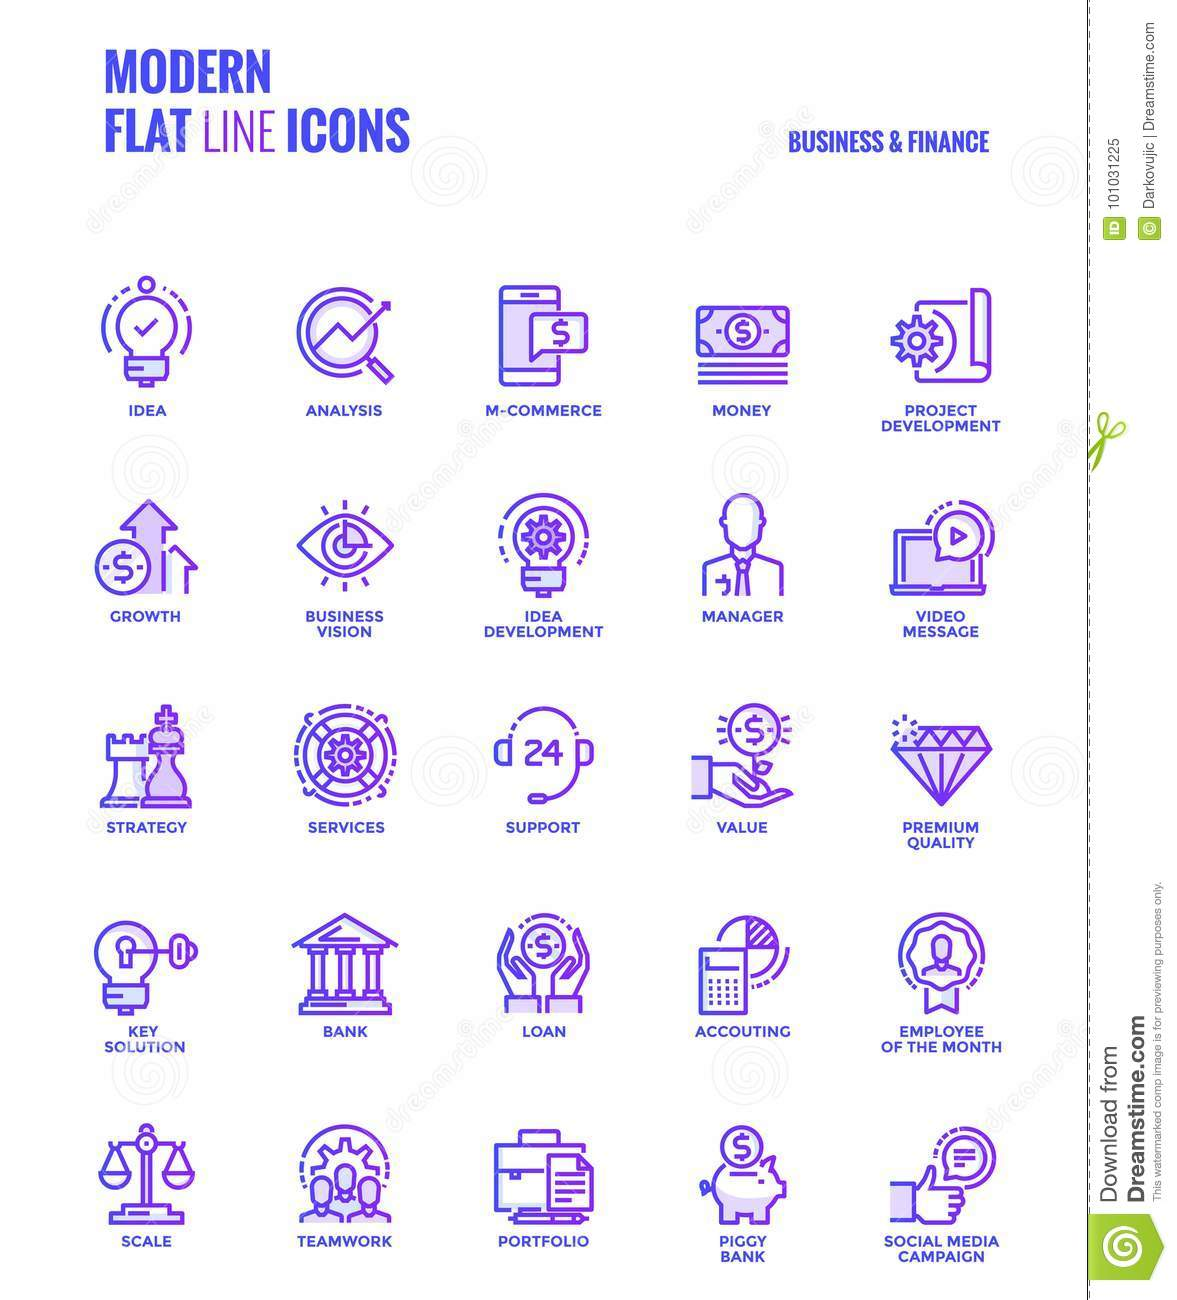 Flat line gradient icons design-Business and Finance